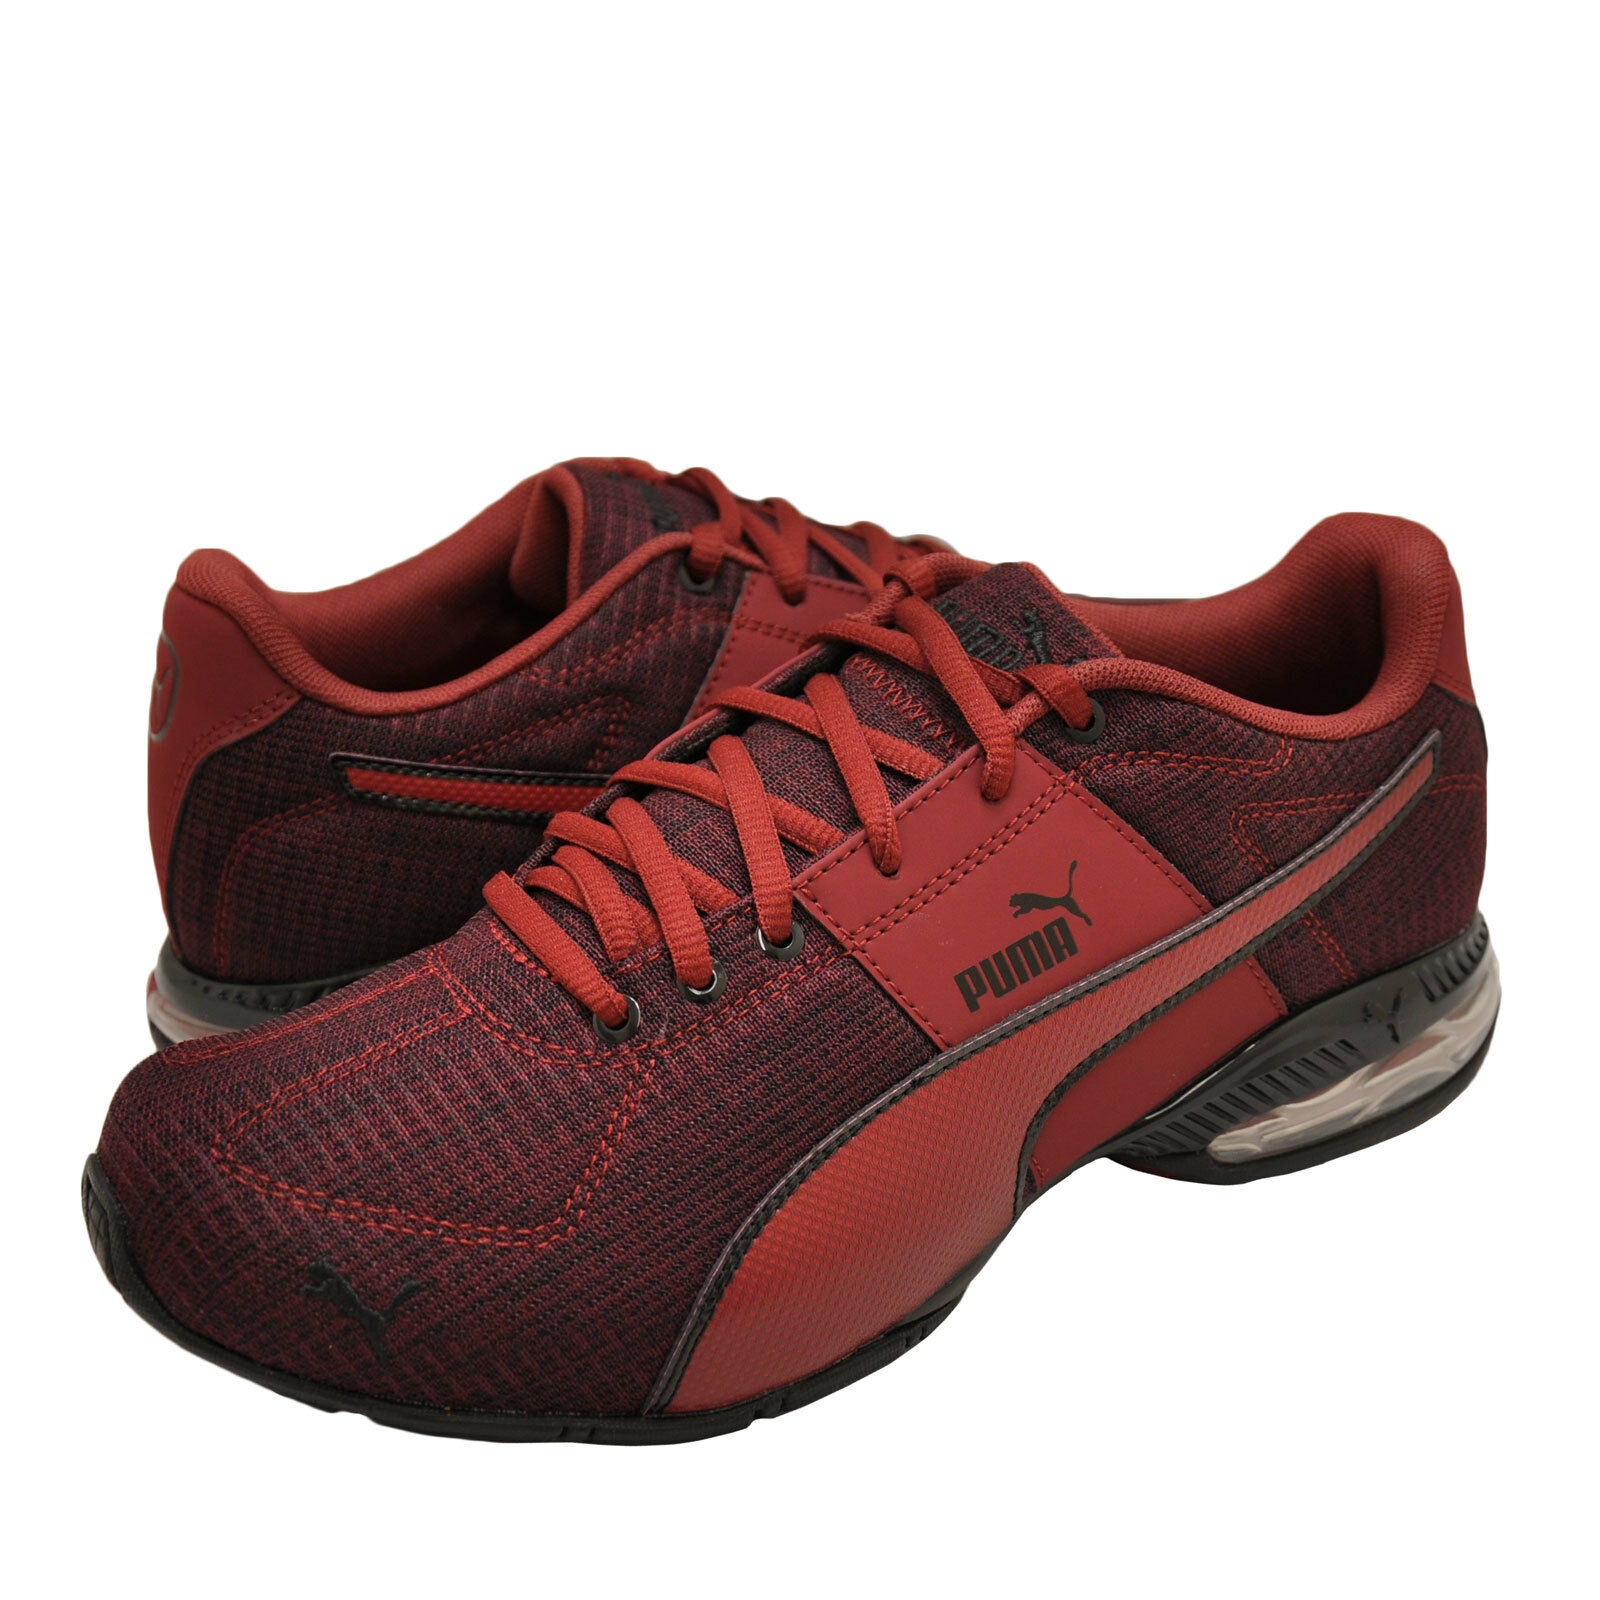 Men's shoes PUMA CELL SURIN 2 HEATHER Athletic Sneakers 191118-01 POMEGRANATE